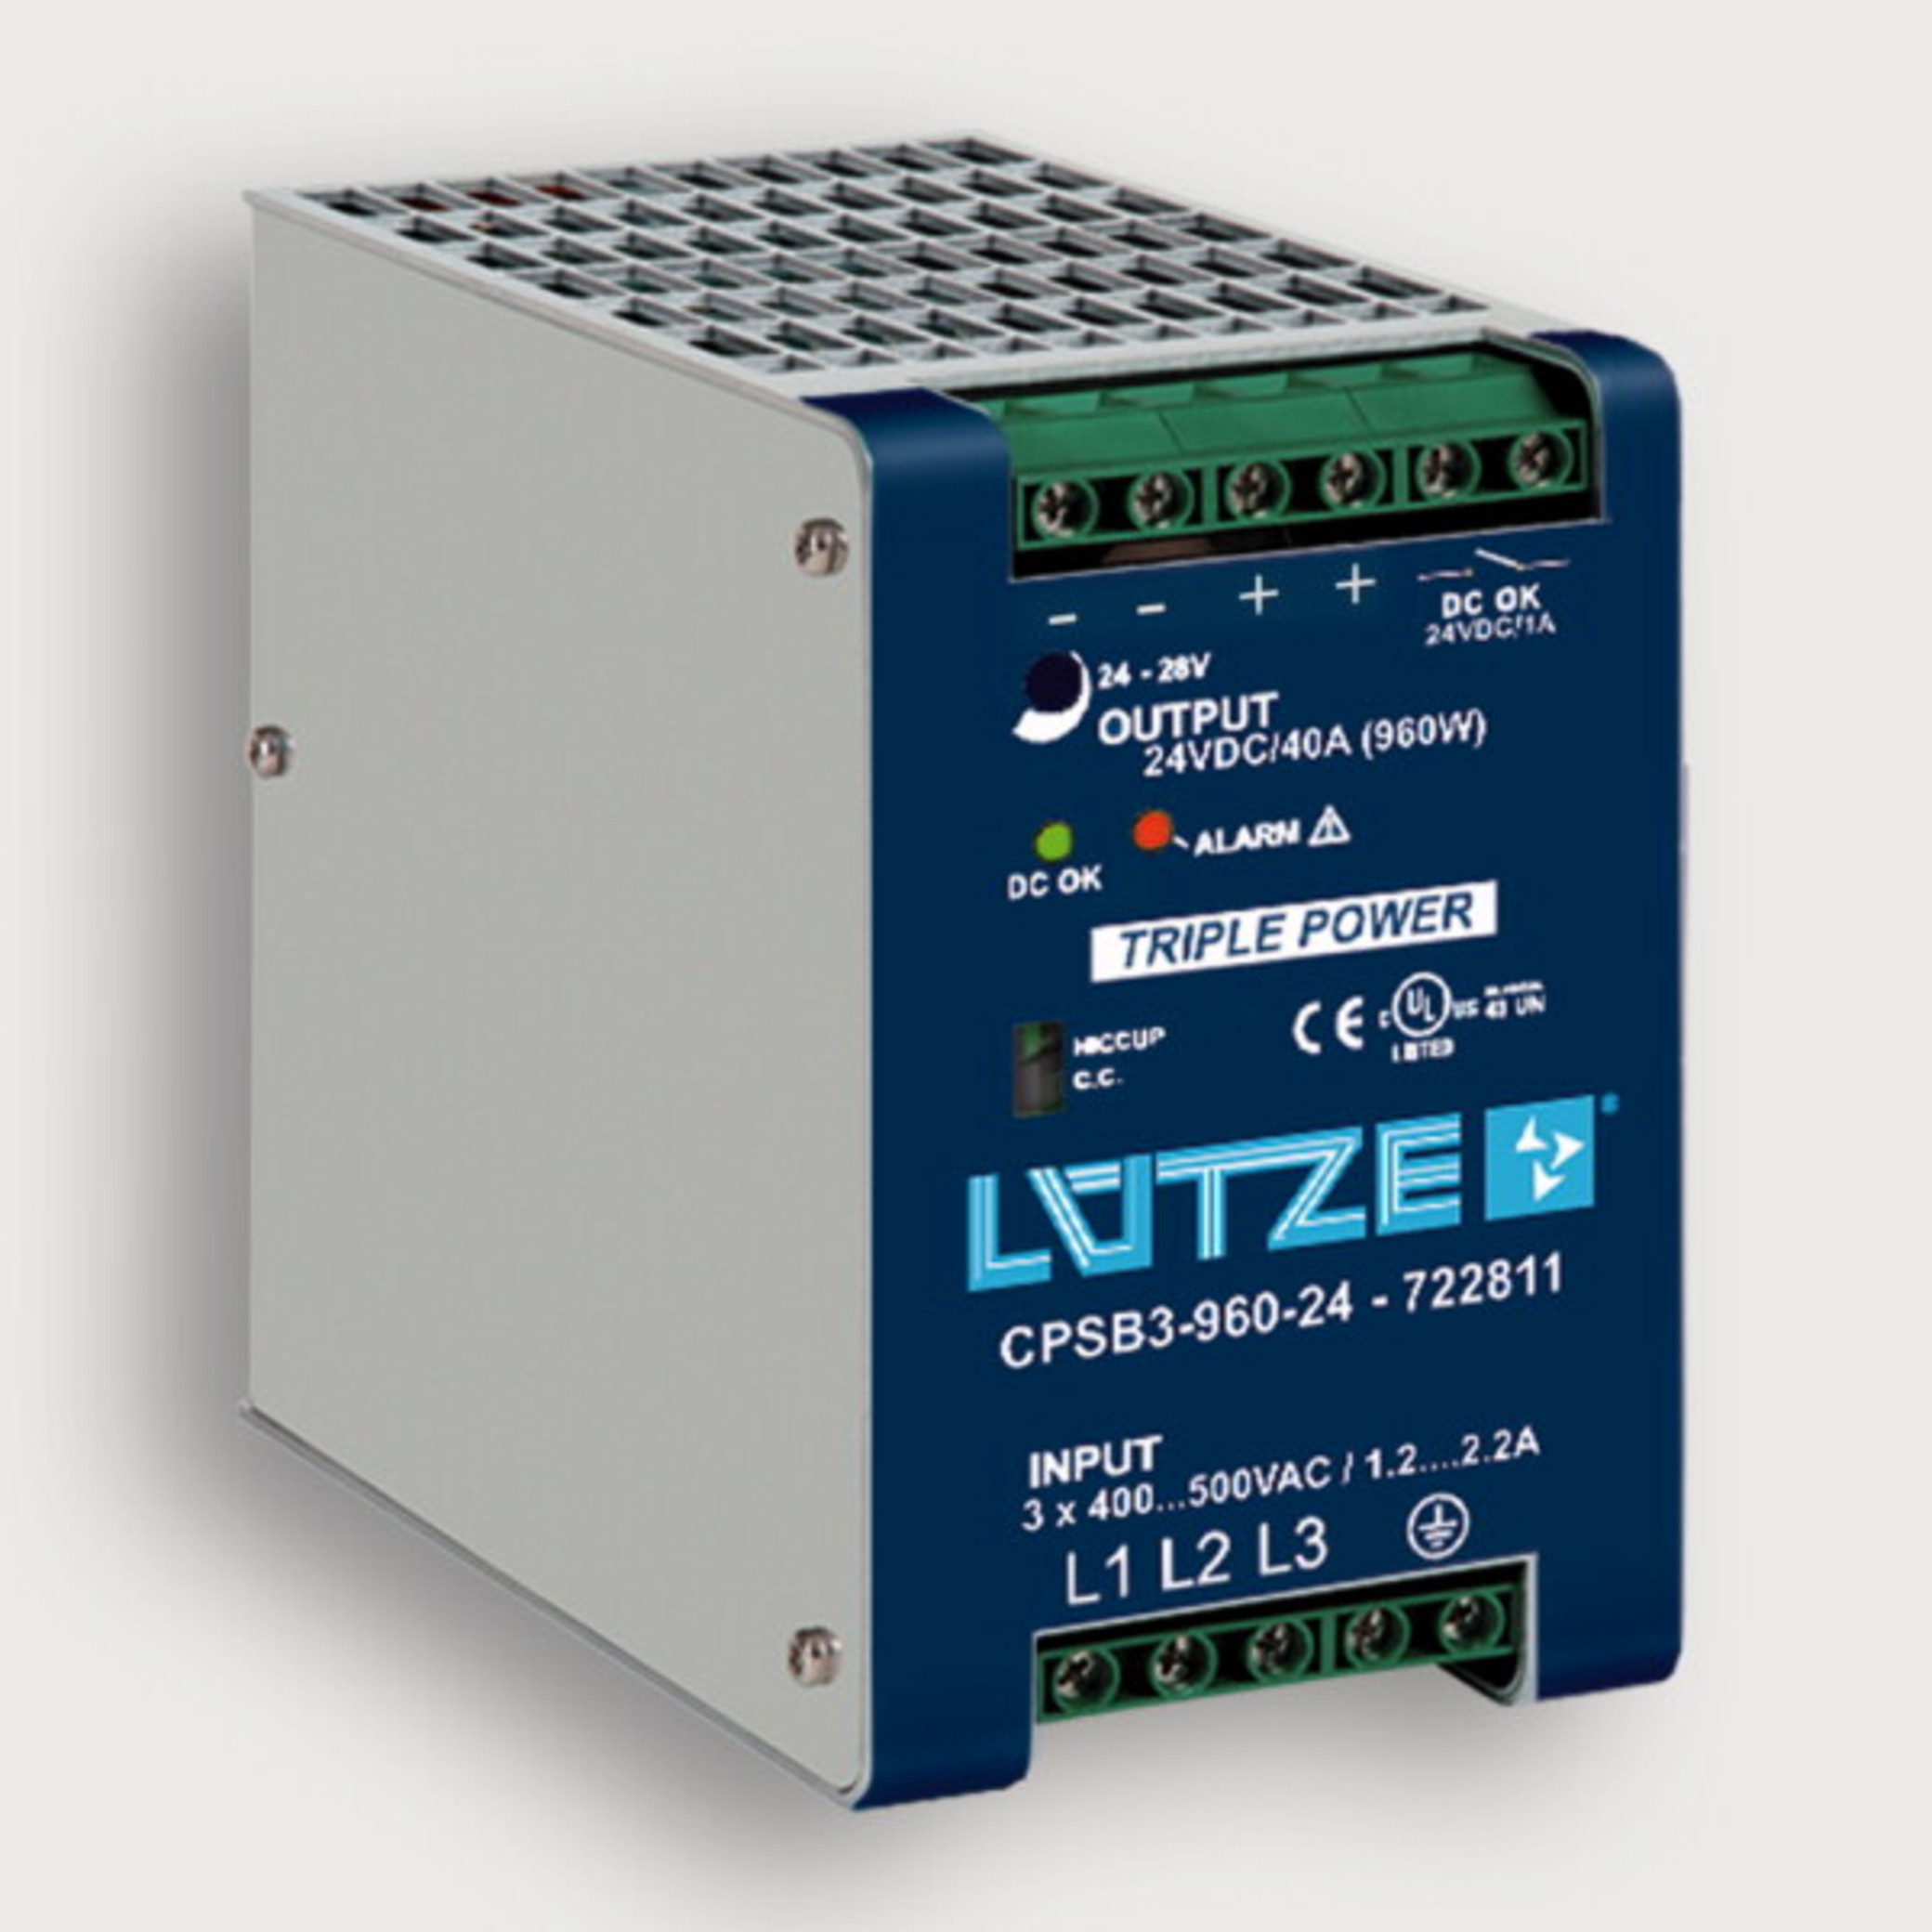 722800 - regulated, 480 W, 3-phase